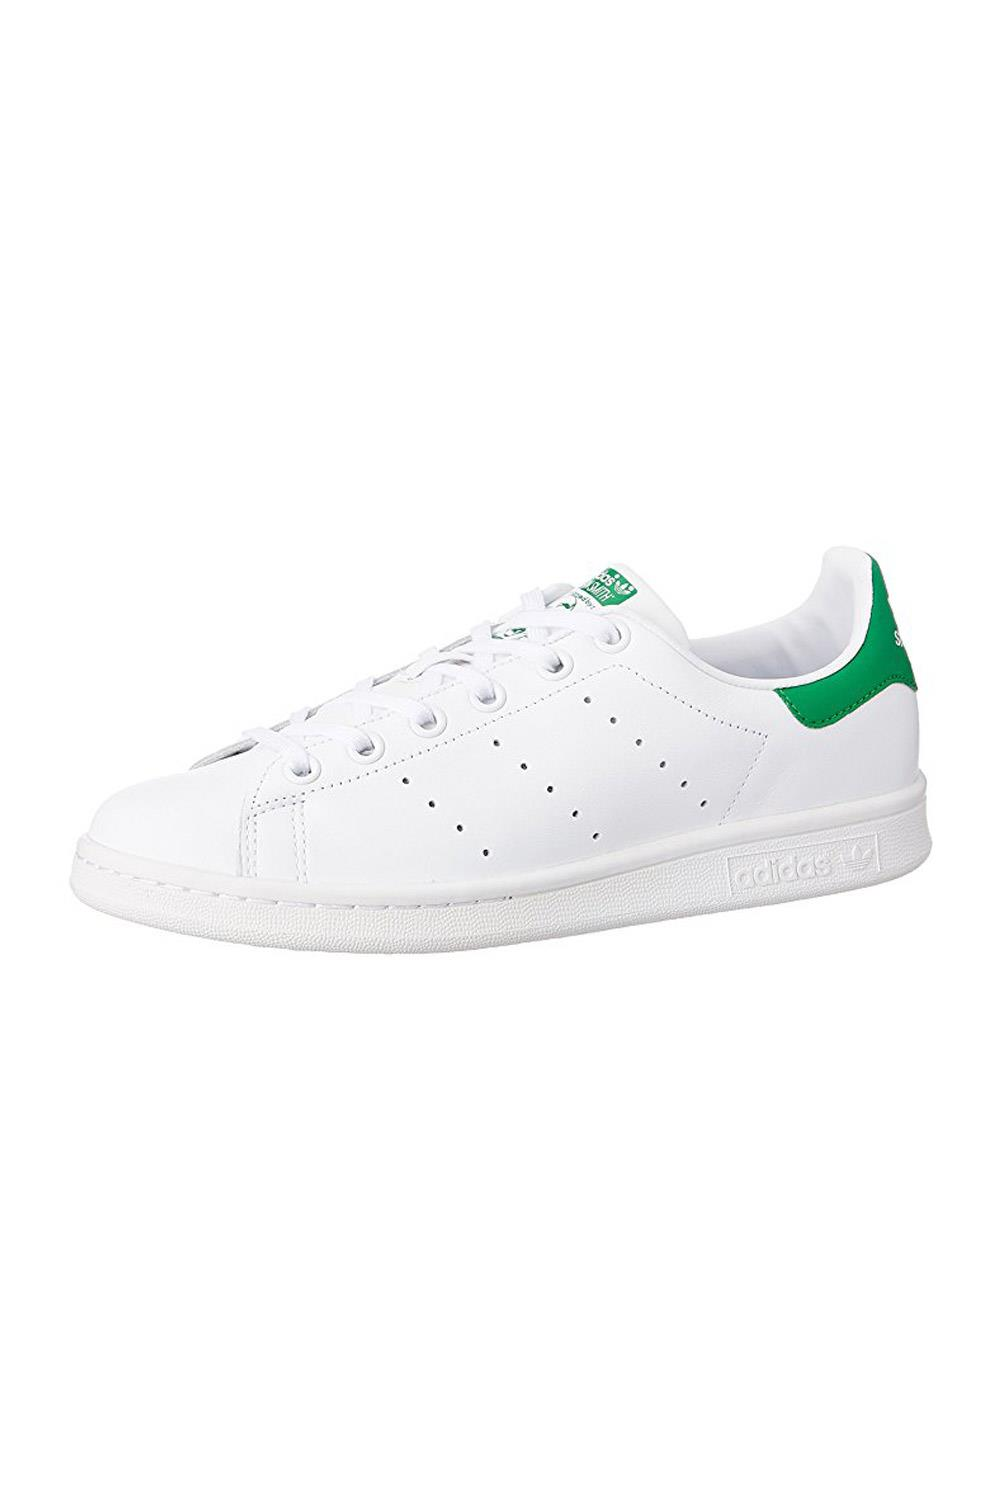 como comprar ropa de marca barata stan smith amazon. Amazon